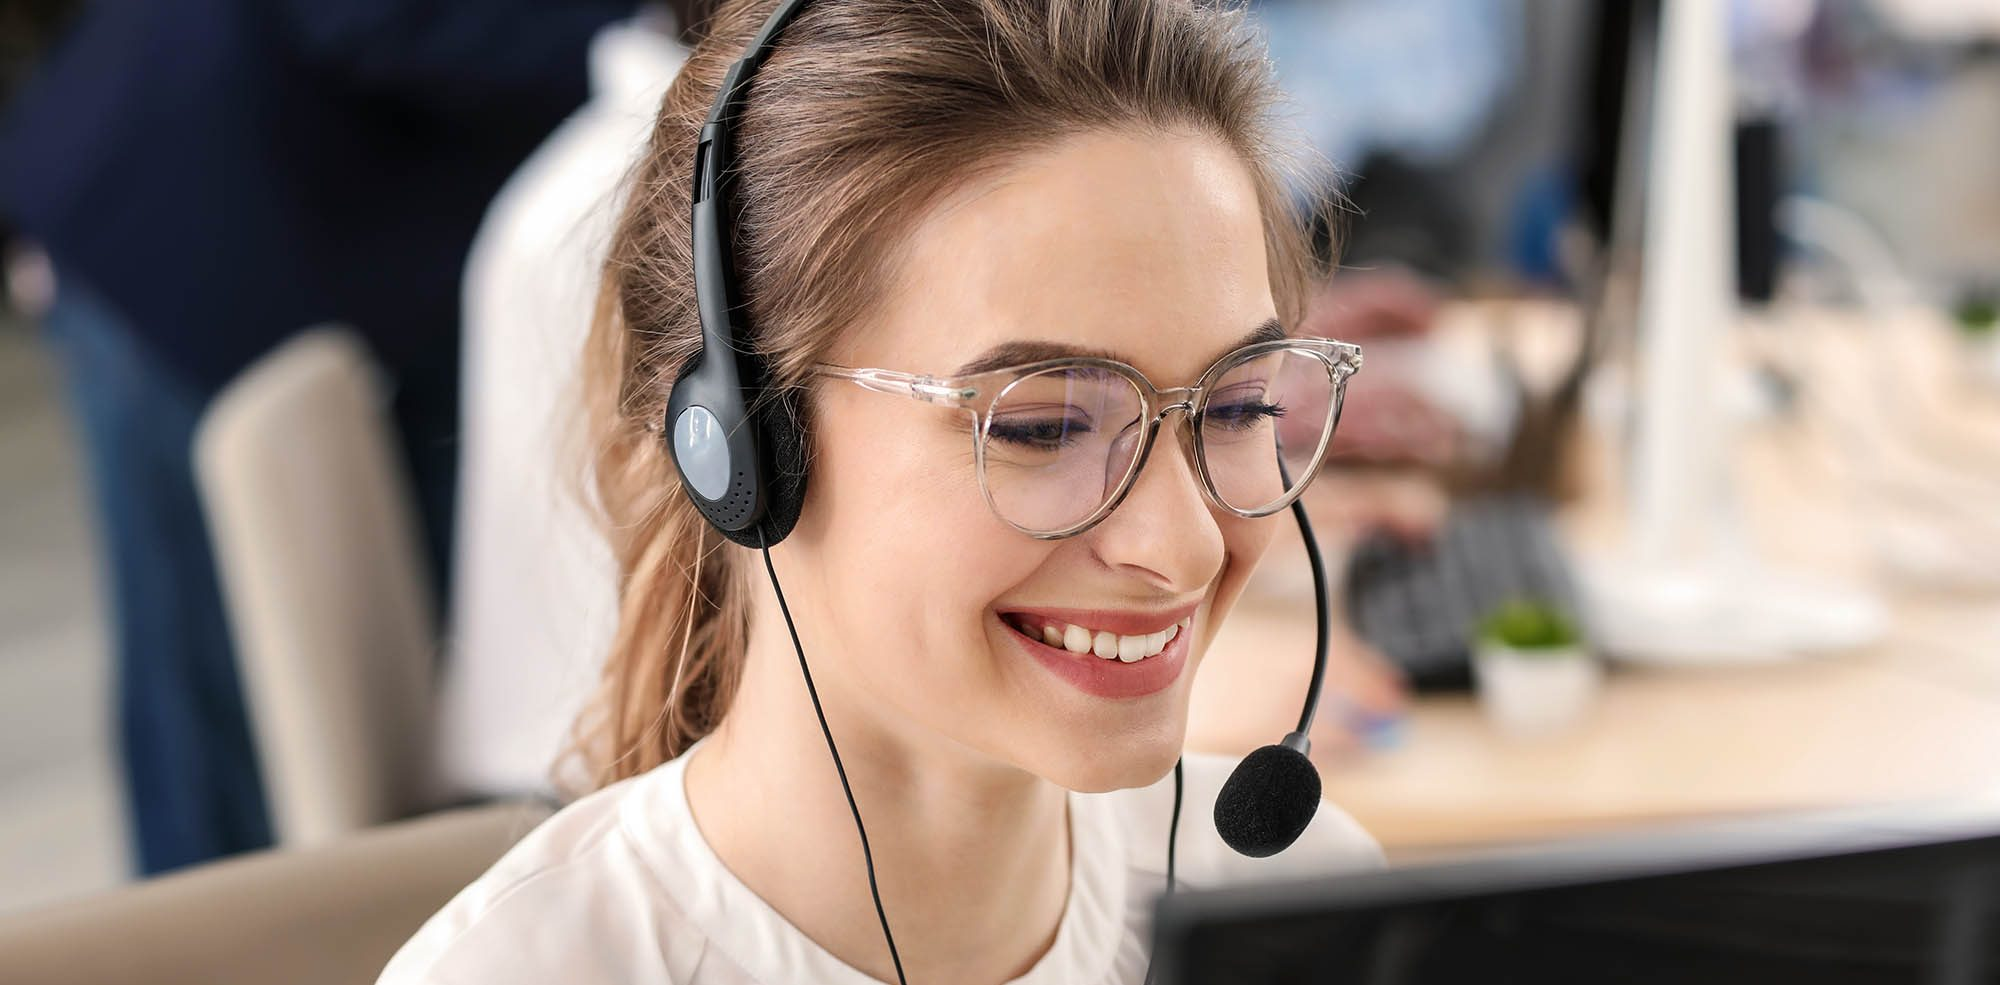 Female technical support agent working in office